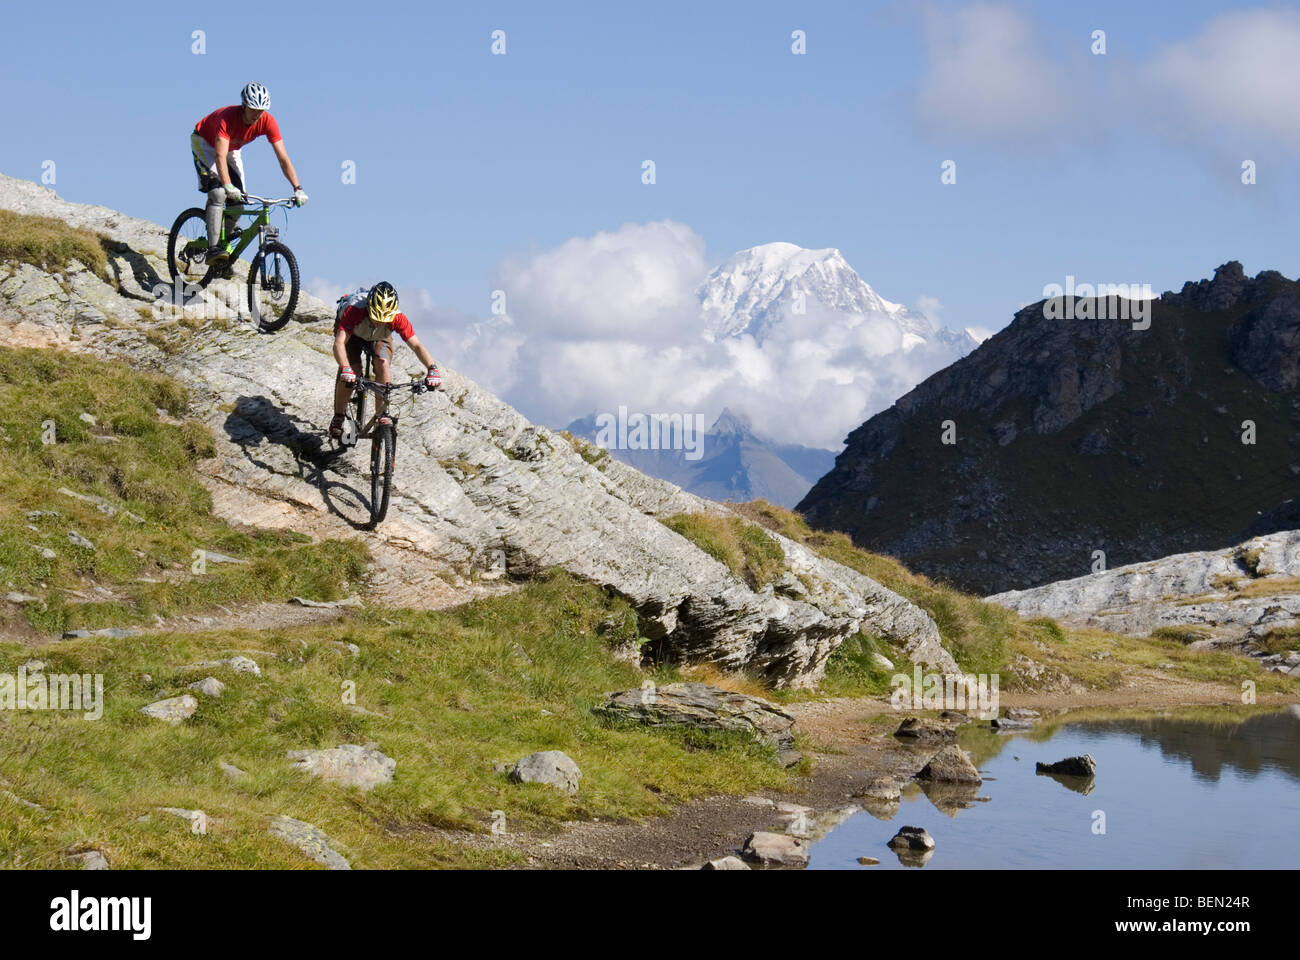 Two mountain bikers ride down a rocky slope next to a lake in the mountains near Les Arcs in the French Alps. - Stock Image